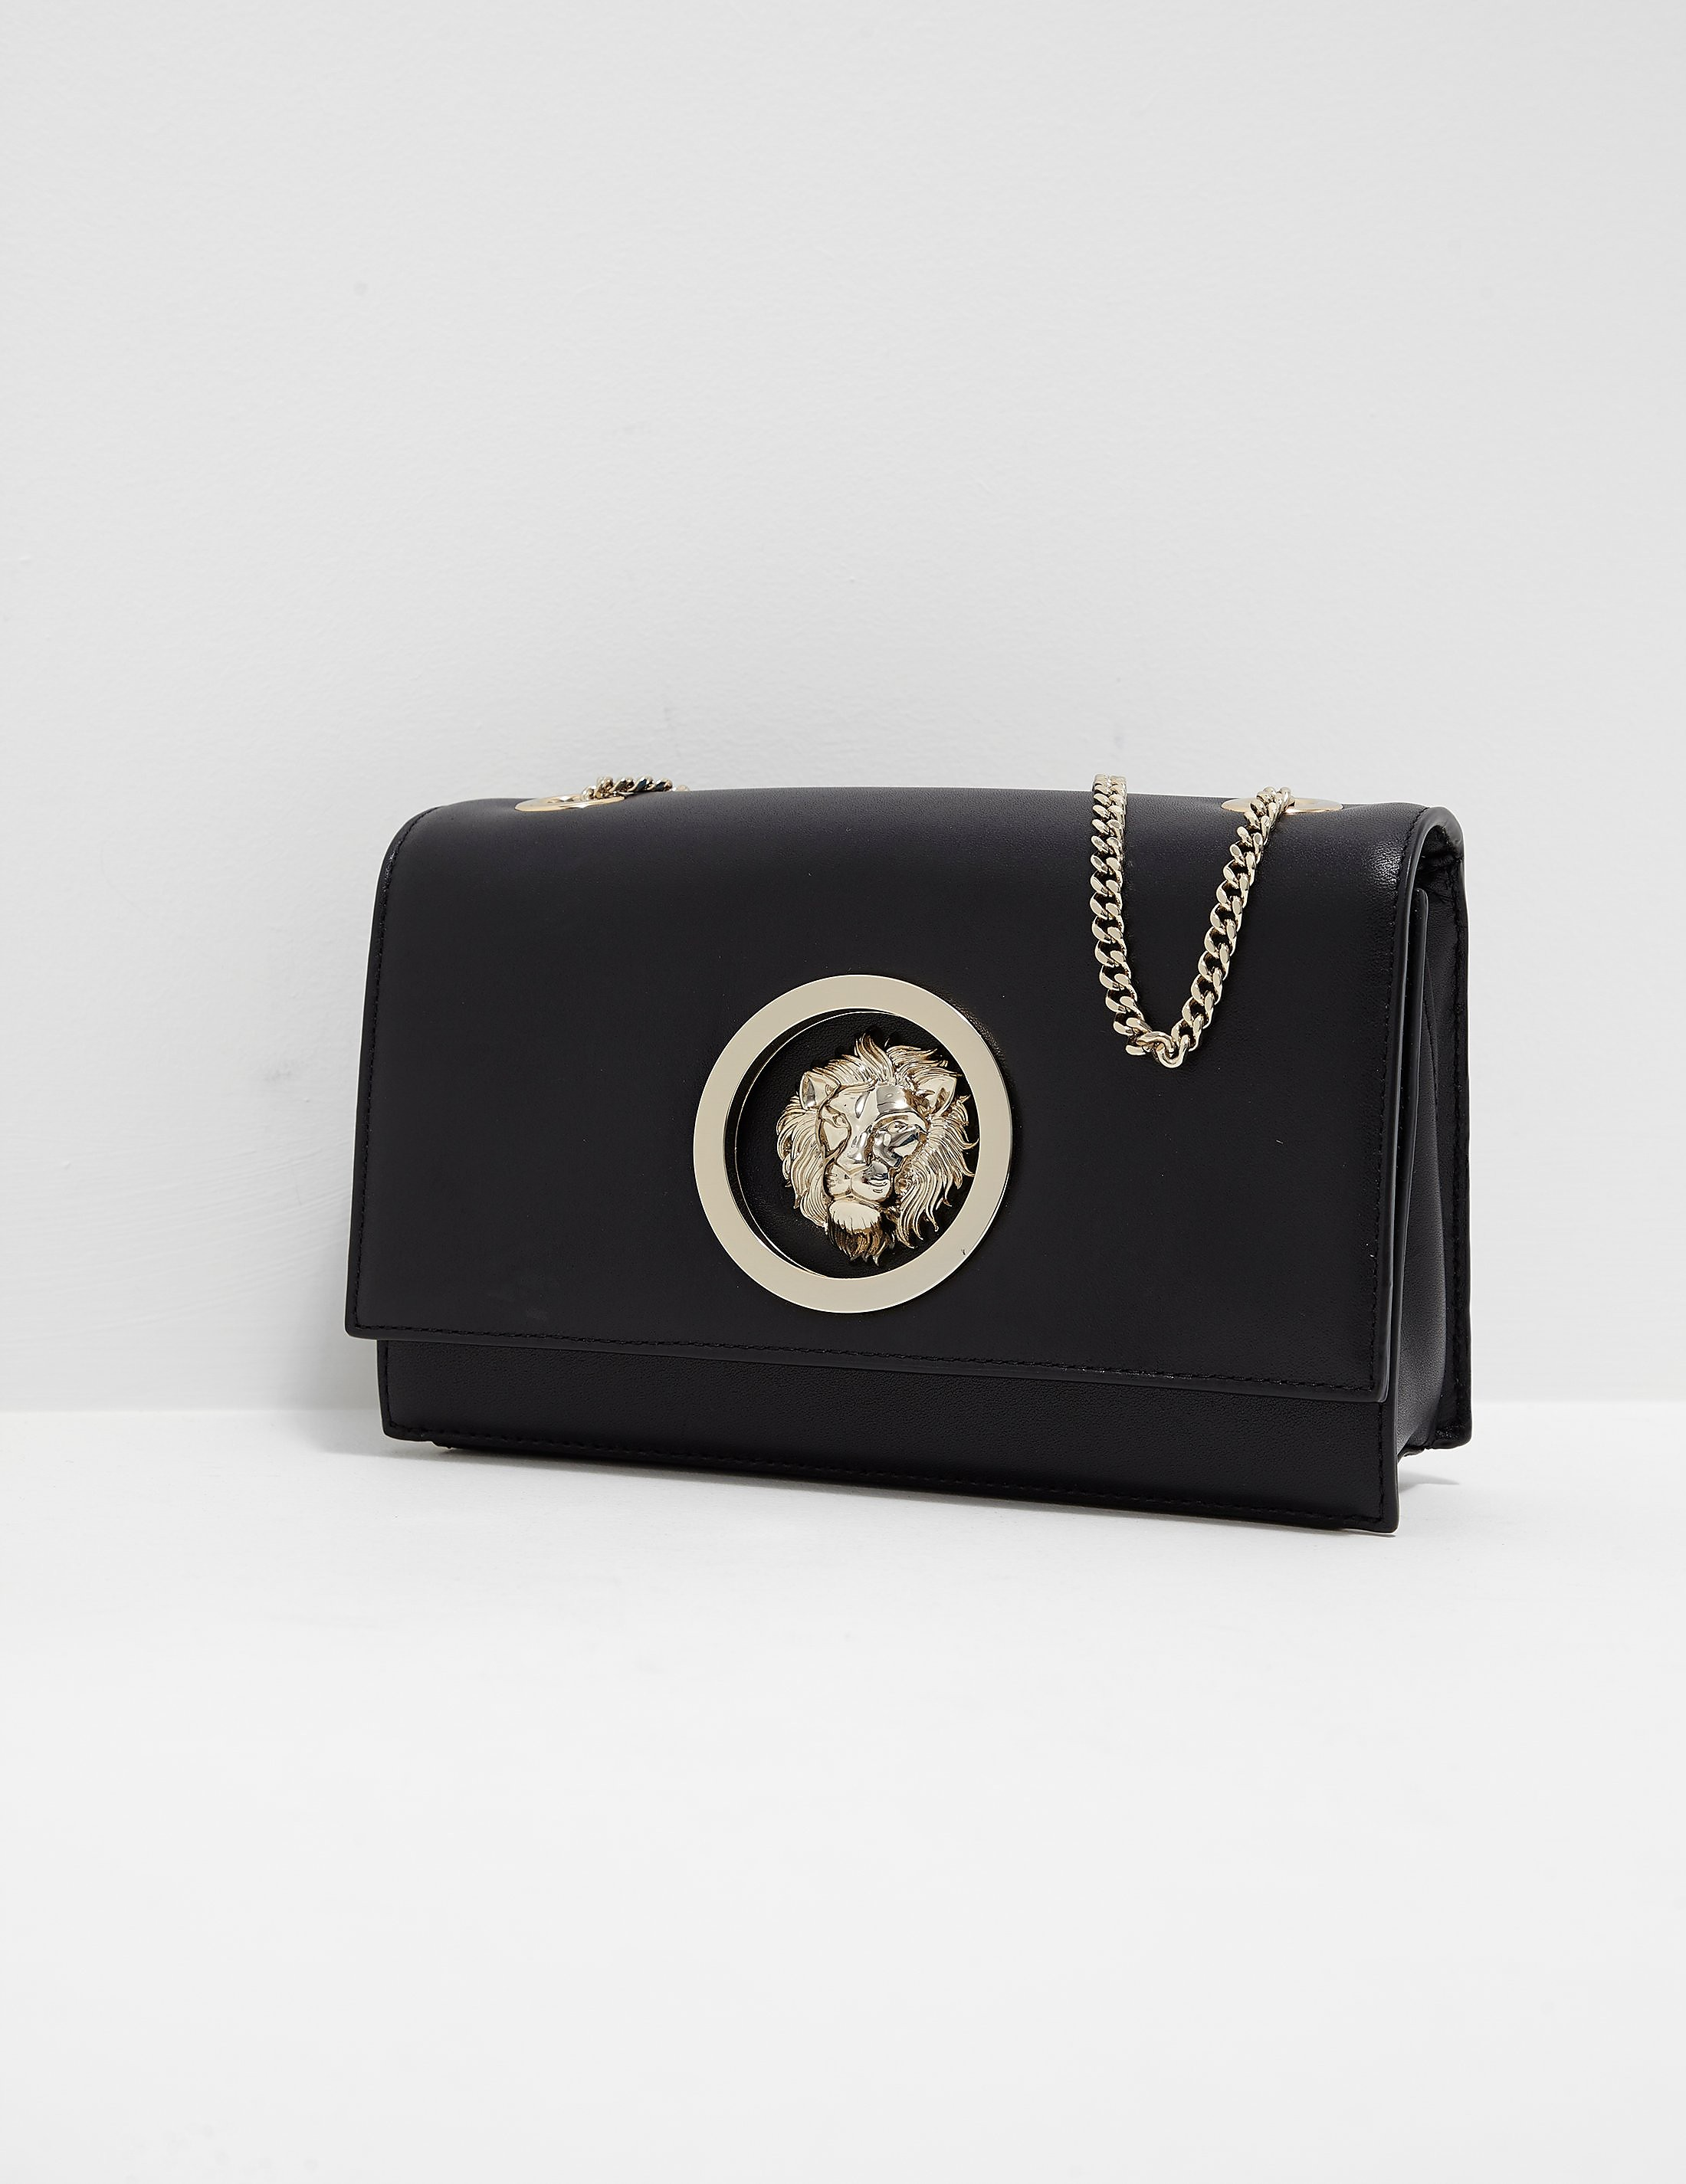 Versus Versace Lion Motif Clutch Bag